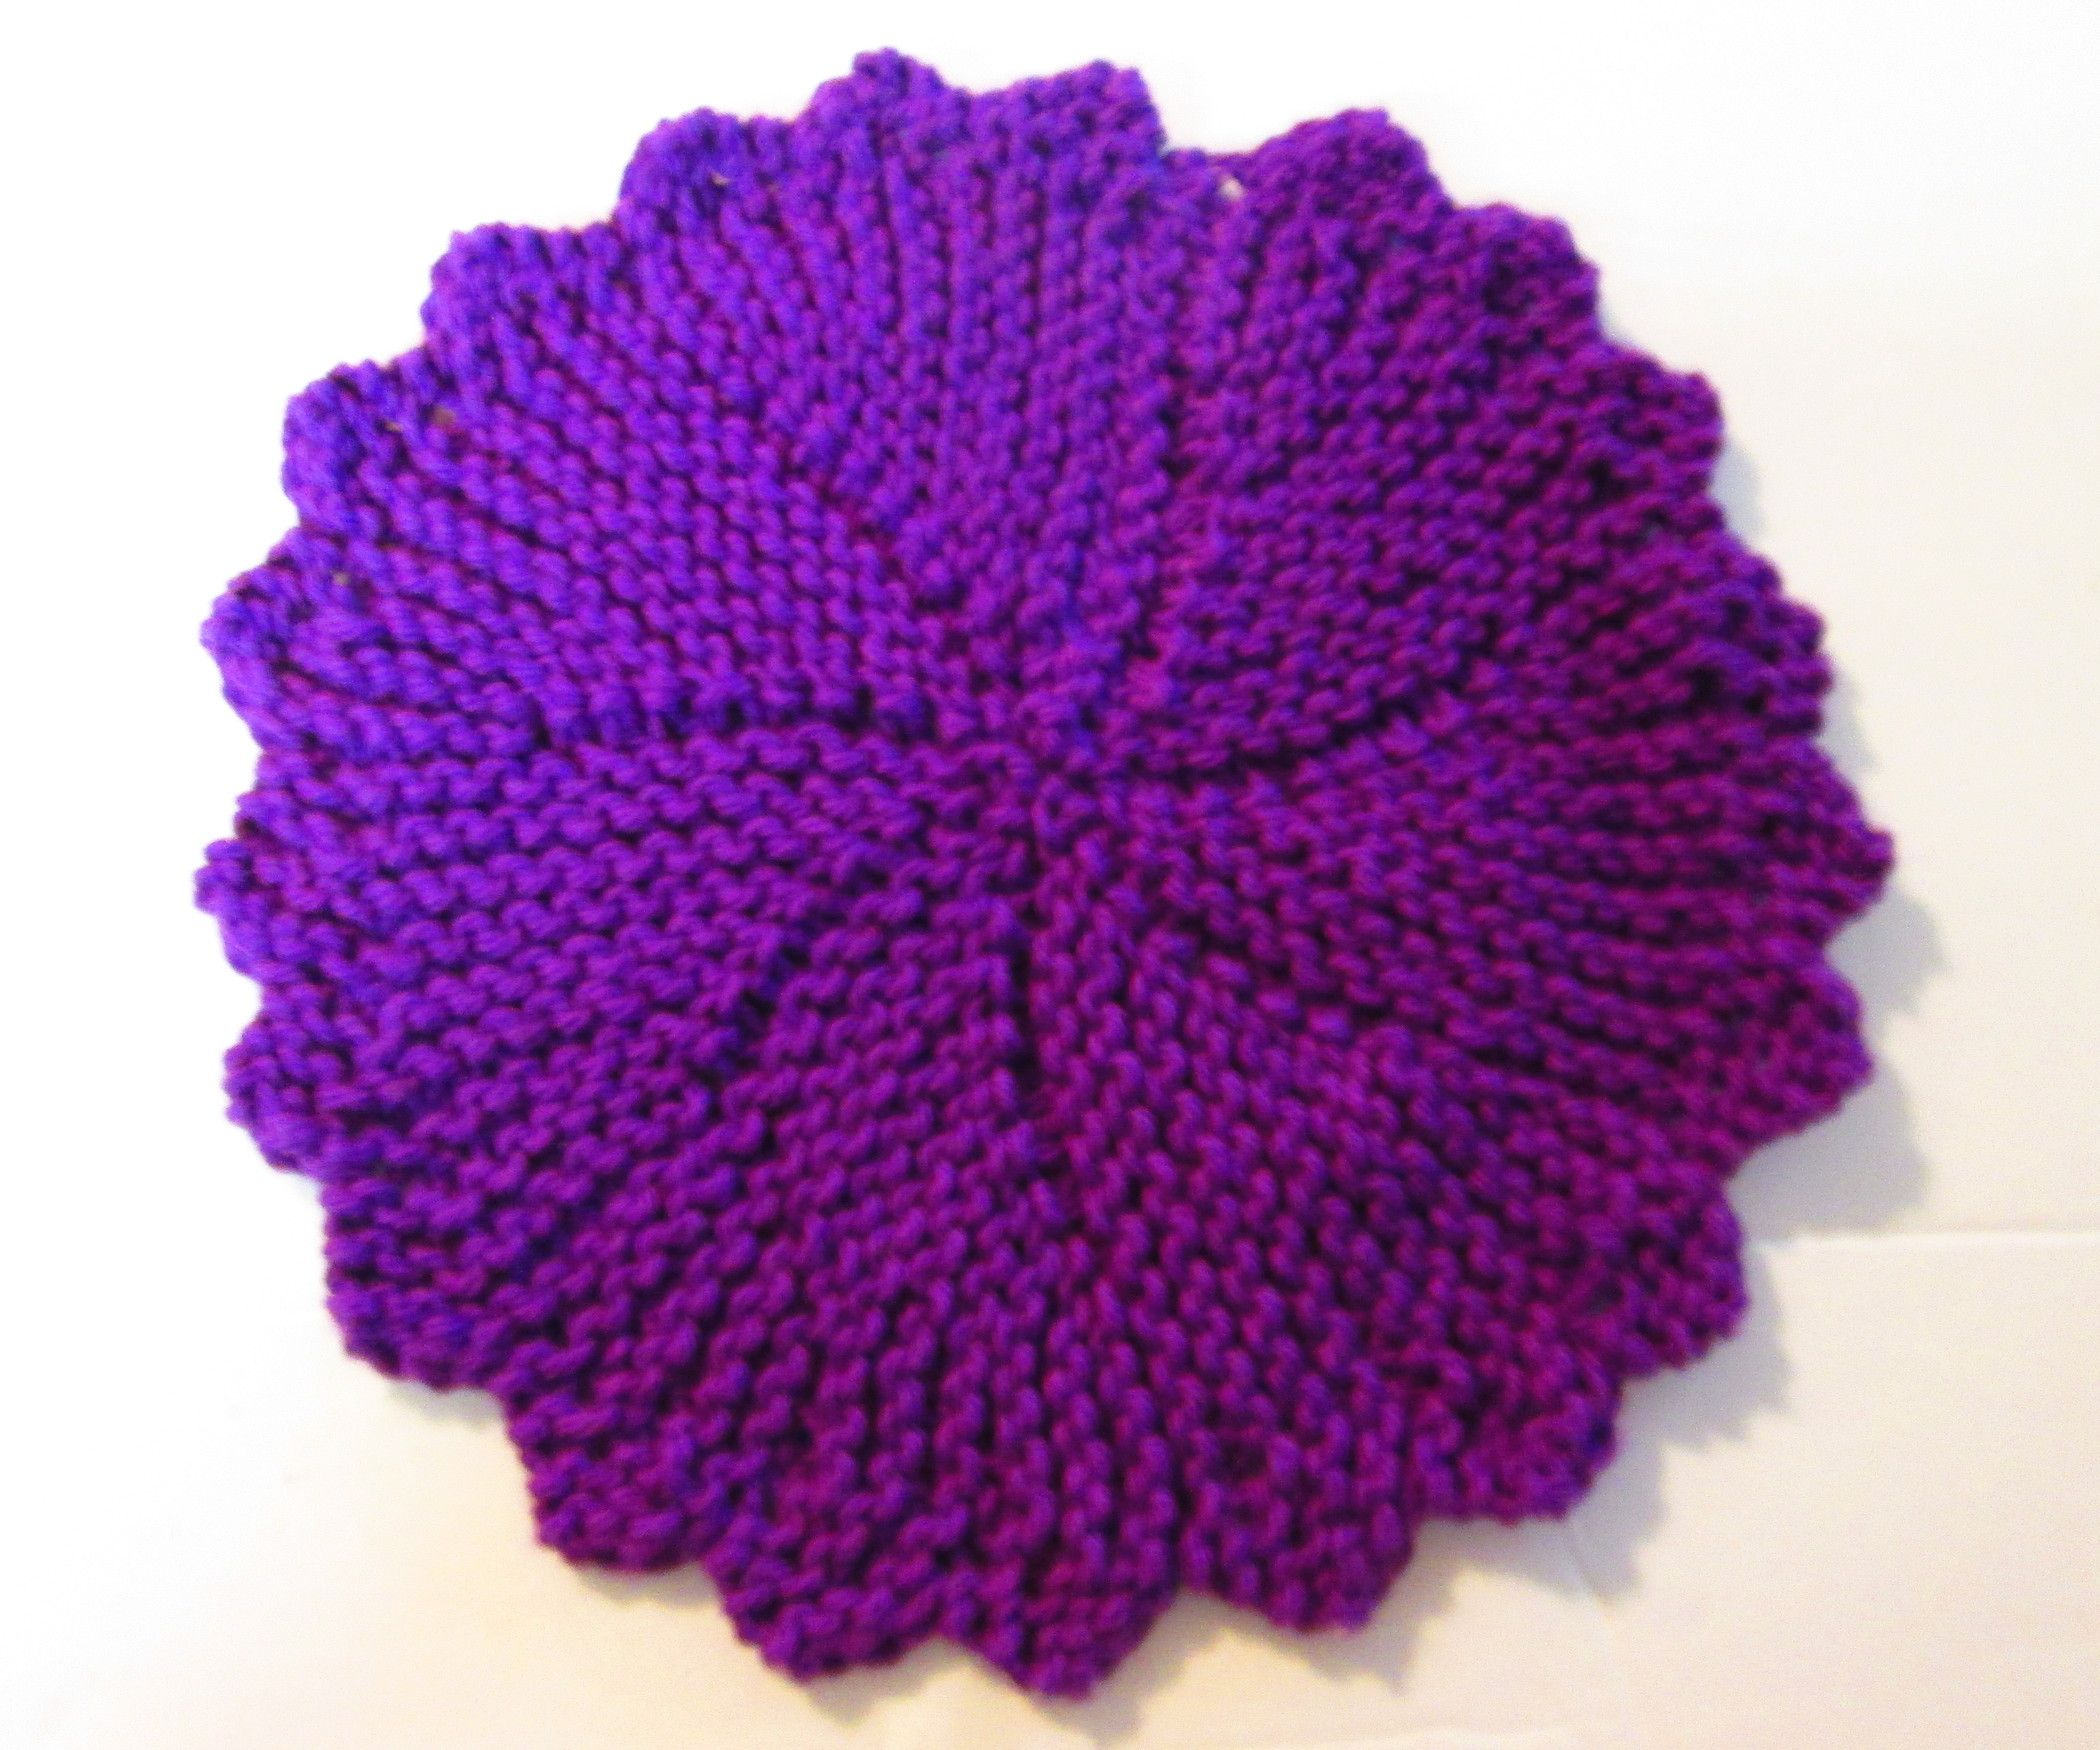 Knit a Round Purple Dish Cloth | Rounding, Patterns and Knitted ...